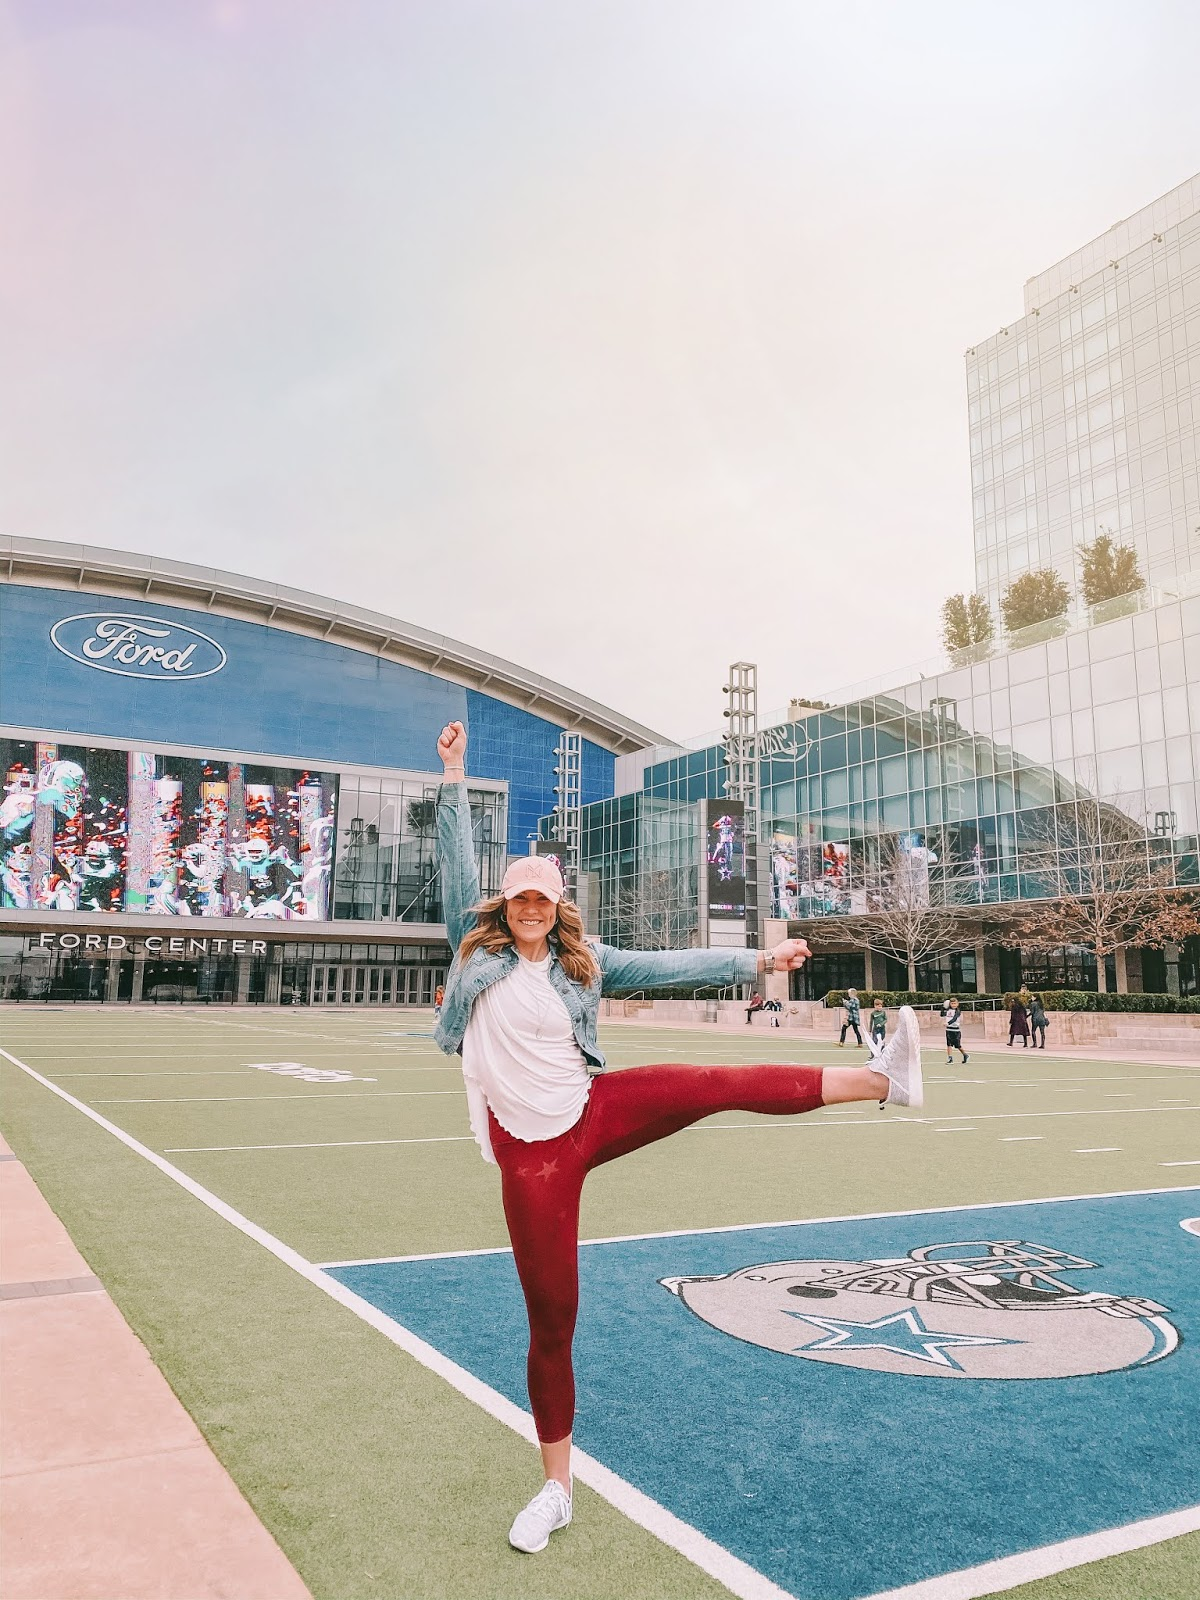 OKC lifestyle blogger Amanda's OK travels to The Star in Frisco, Texas for a girl's weekend getaway